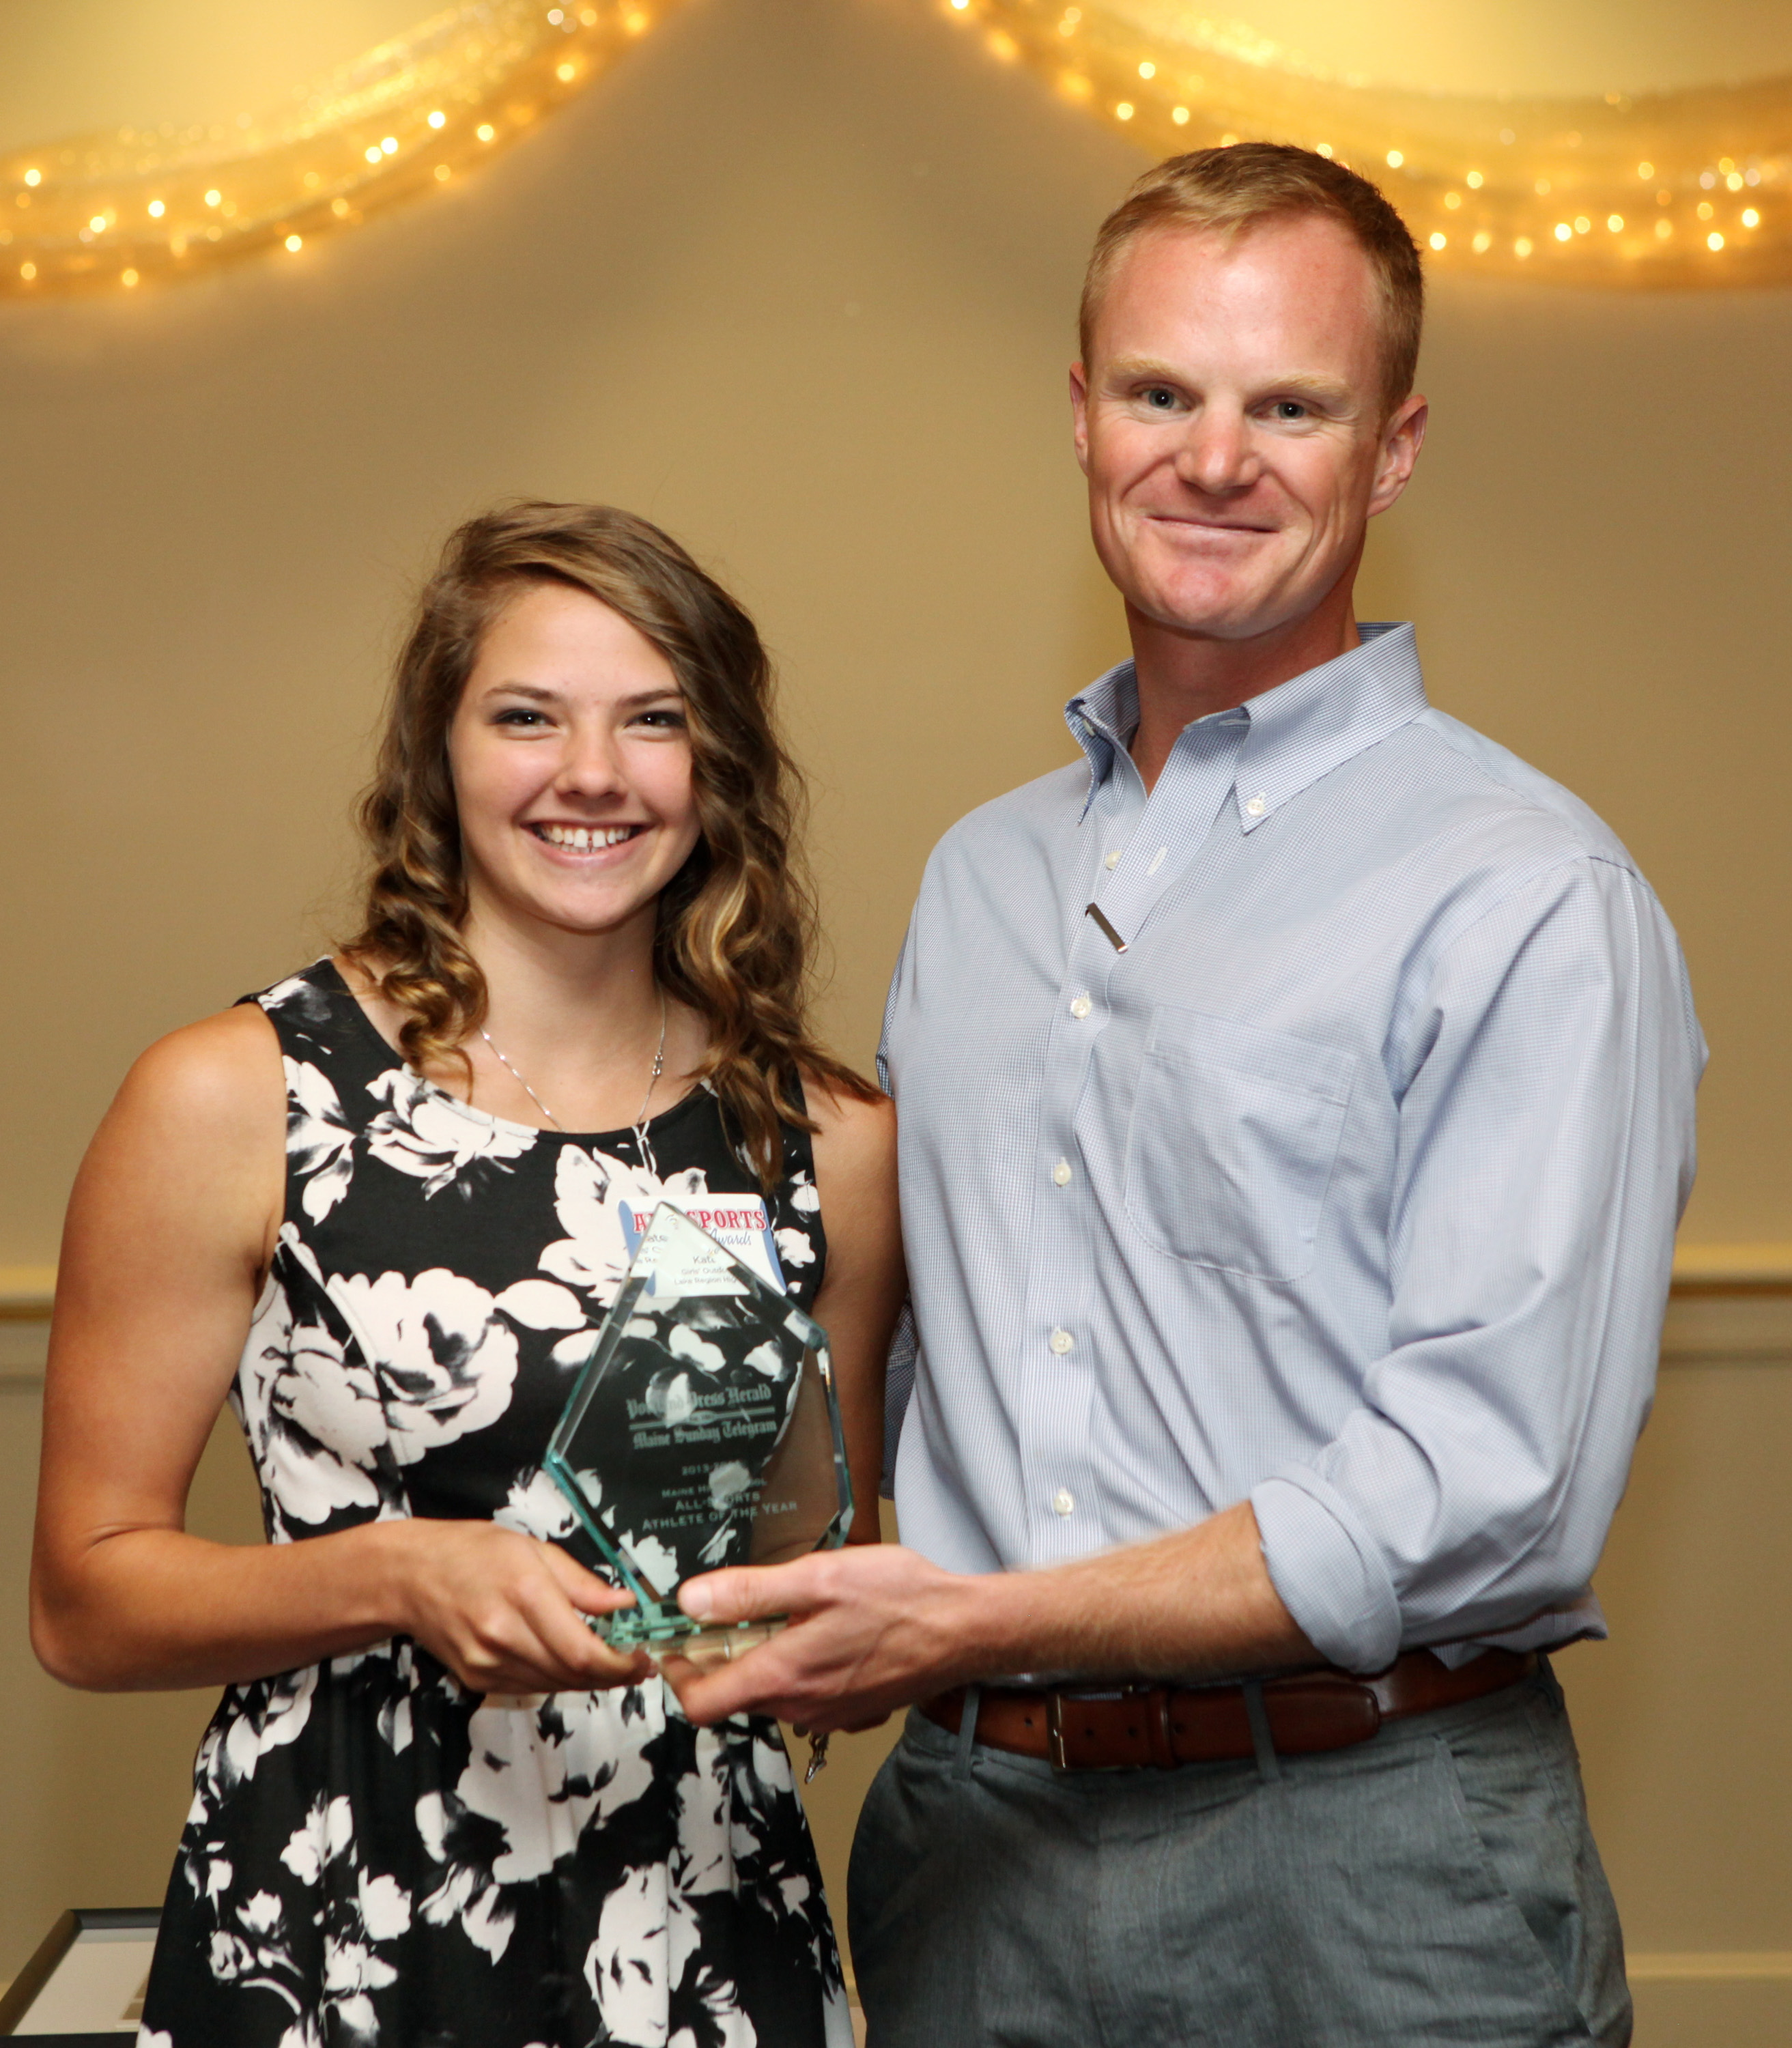 Athlete of the Year Kate Hall of Lake Region High School poses with former major league baseball player Simon Williams during at the 27th Annual All-Sports Awards ceremony Sunday. Joel Page/Staff Photographer